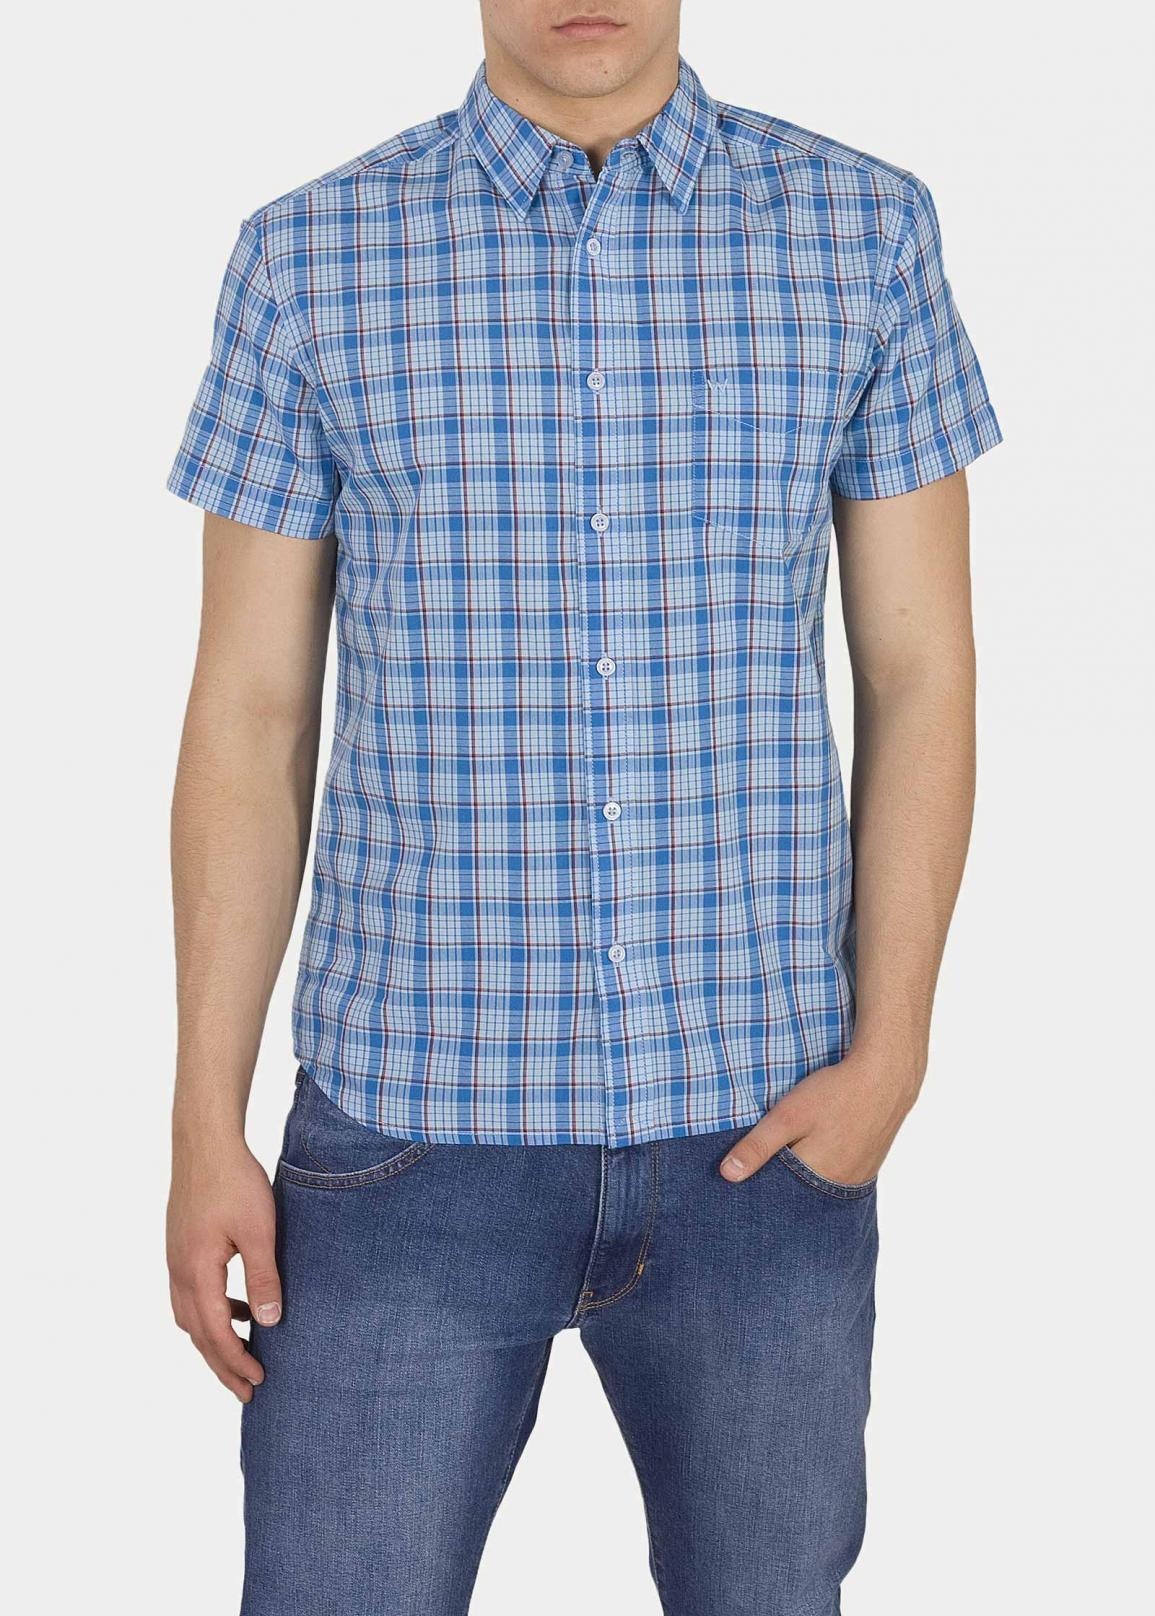 Wrangler® Short Sleeve 1 Pocket Shirt - Cerulean Blue